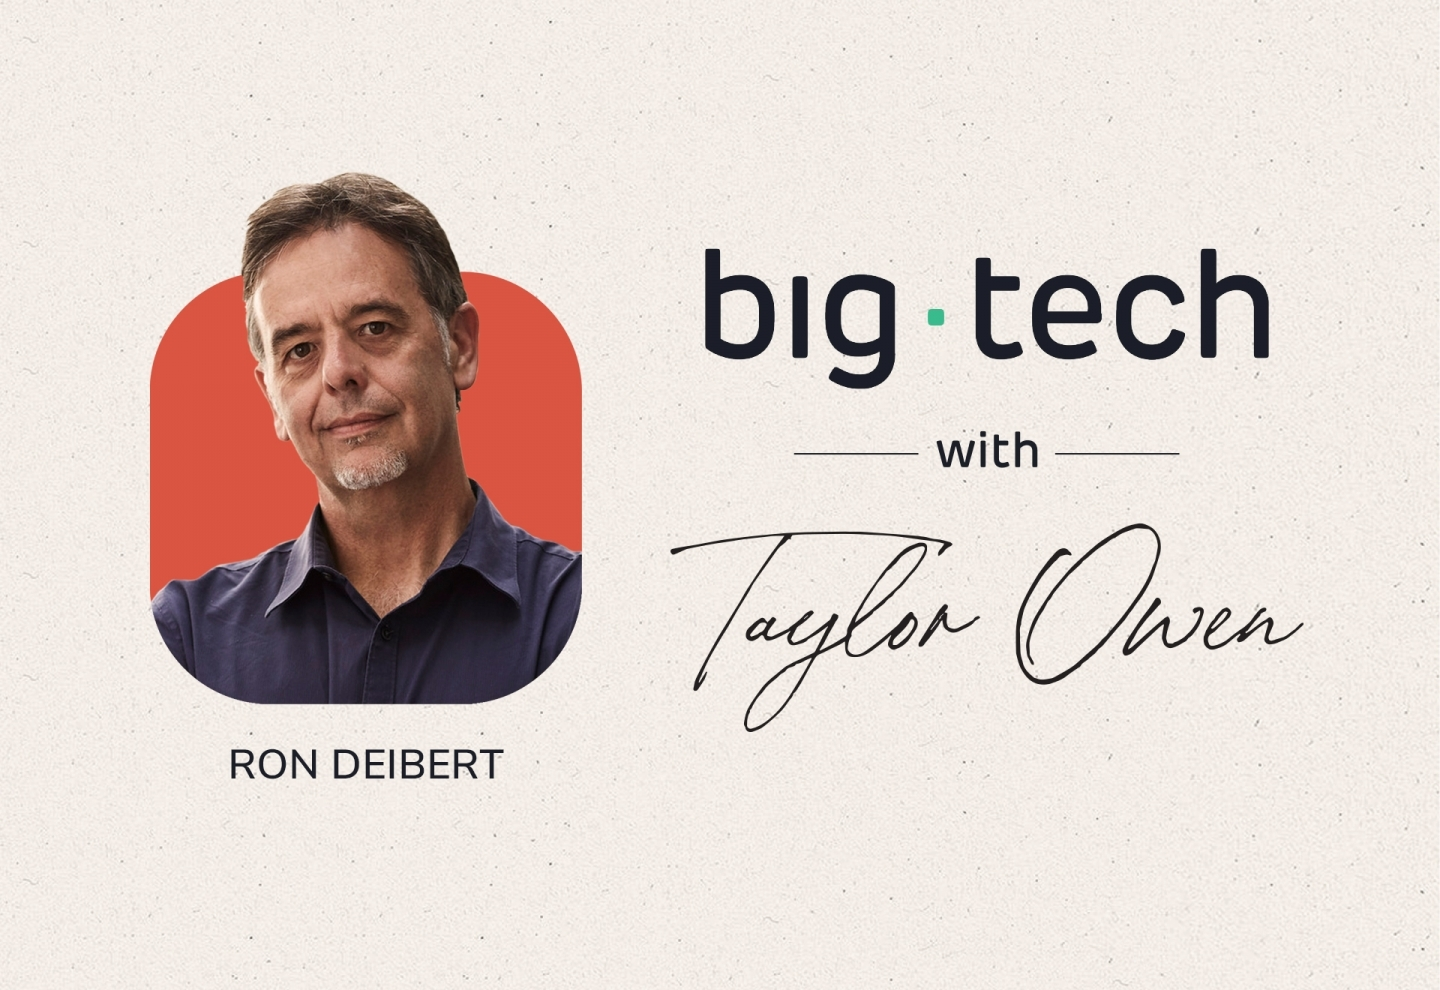 Ron Deibert on Resetting Our Relationship with Technology